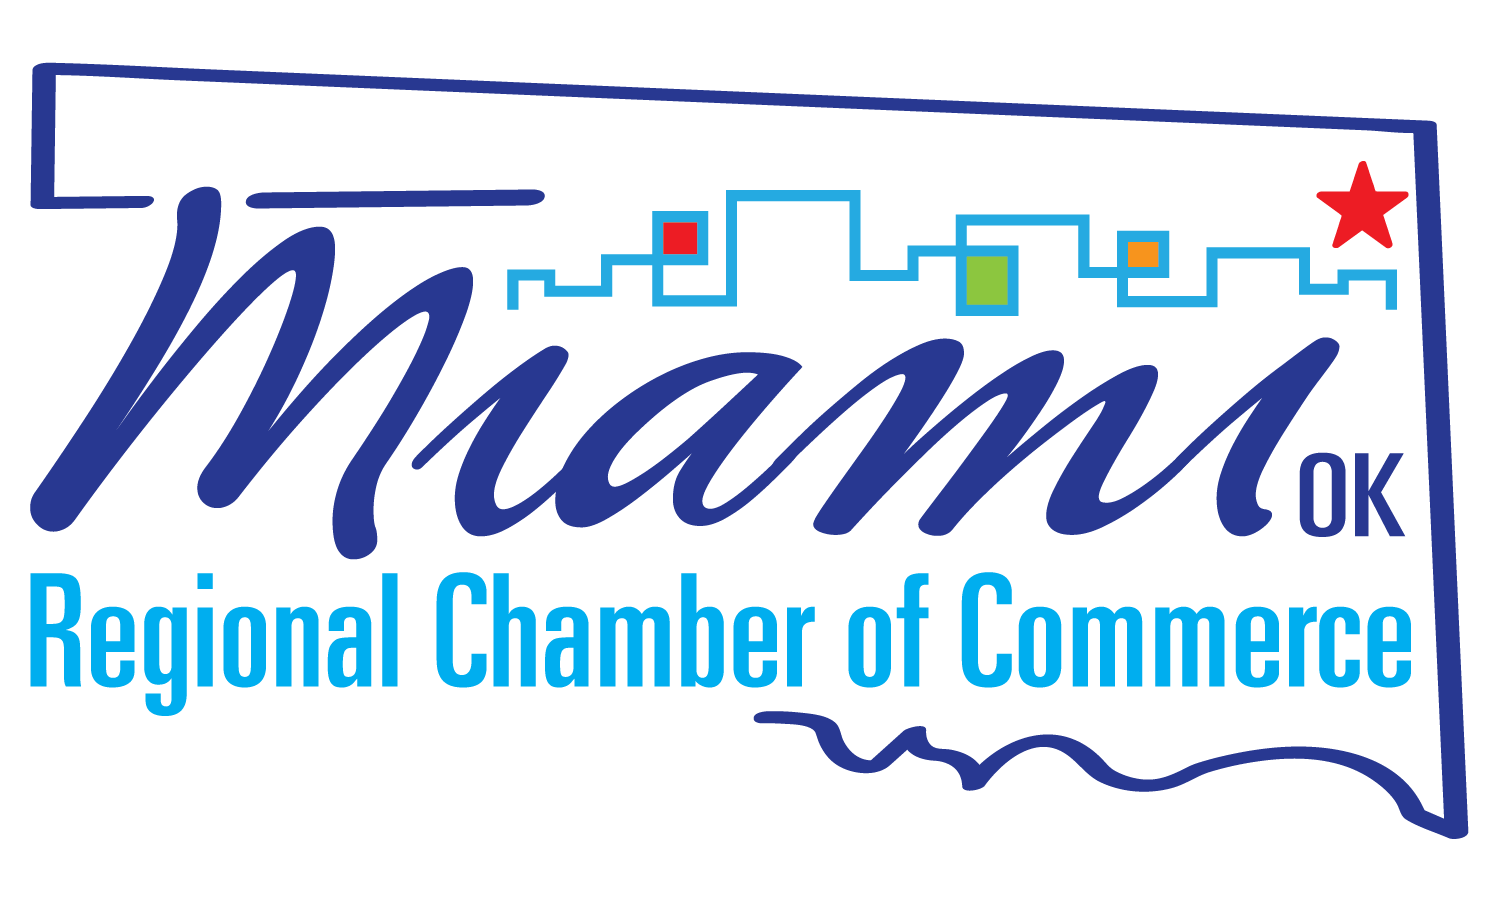 Miami Oklahoma Chamber of Commerce